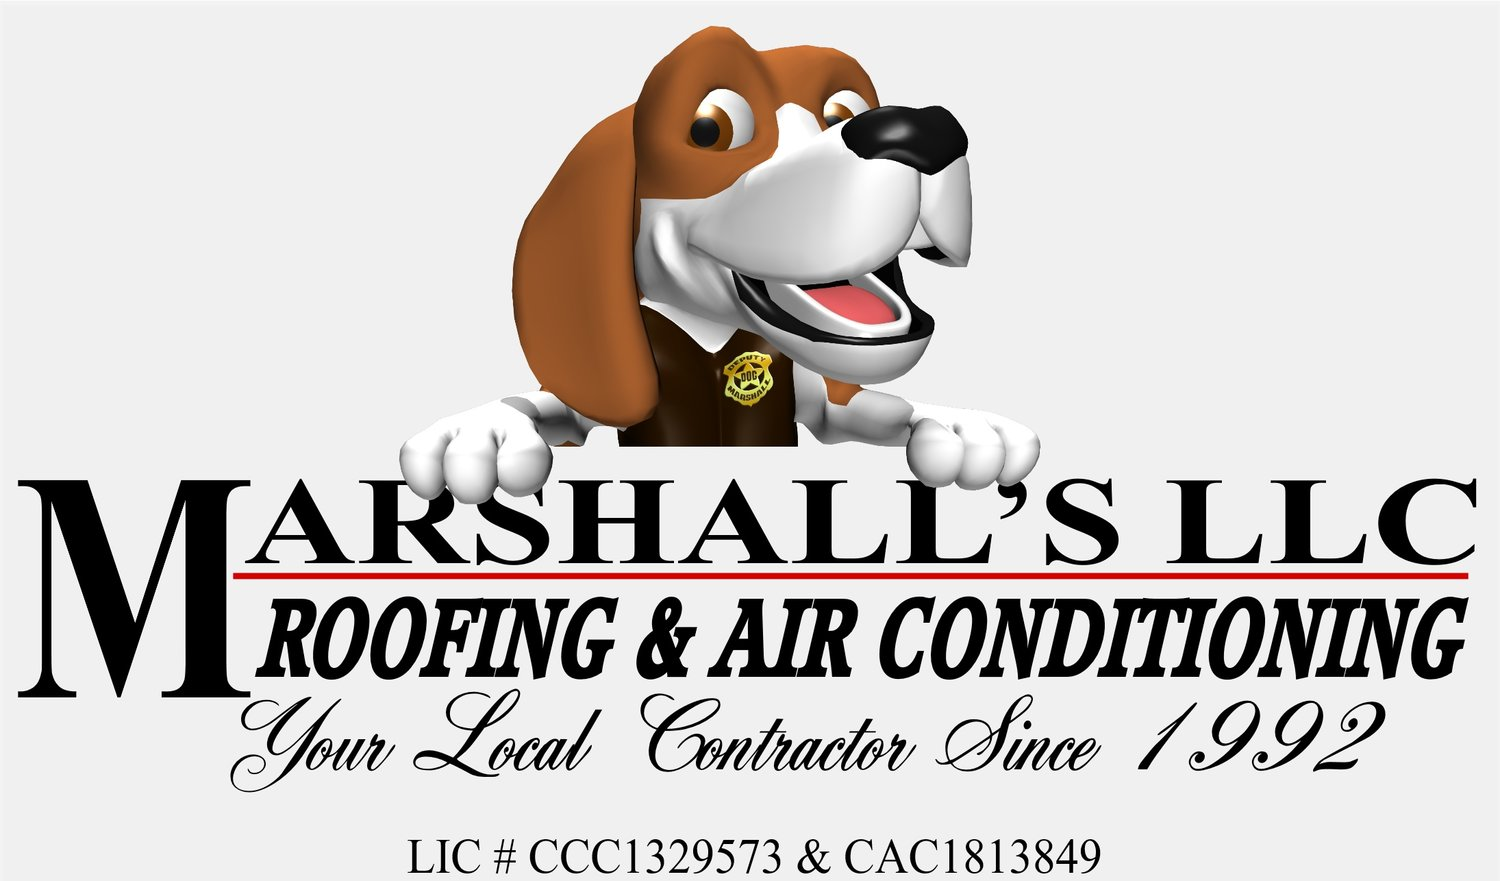 Marshall's LLC- Air Conditioning and Roofing in Lakeland and Central Florida.